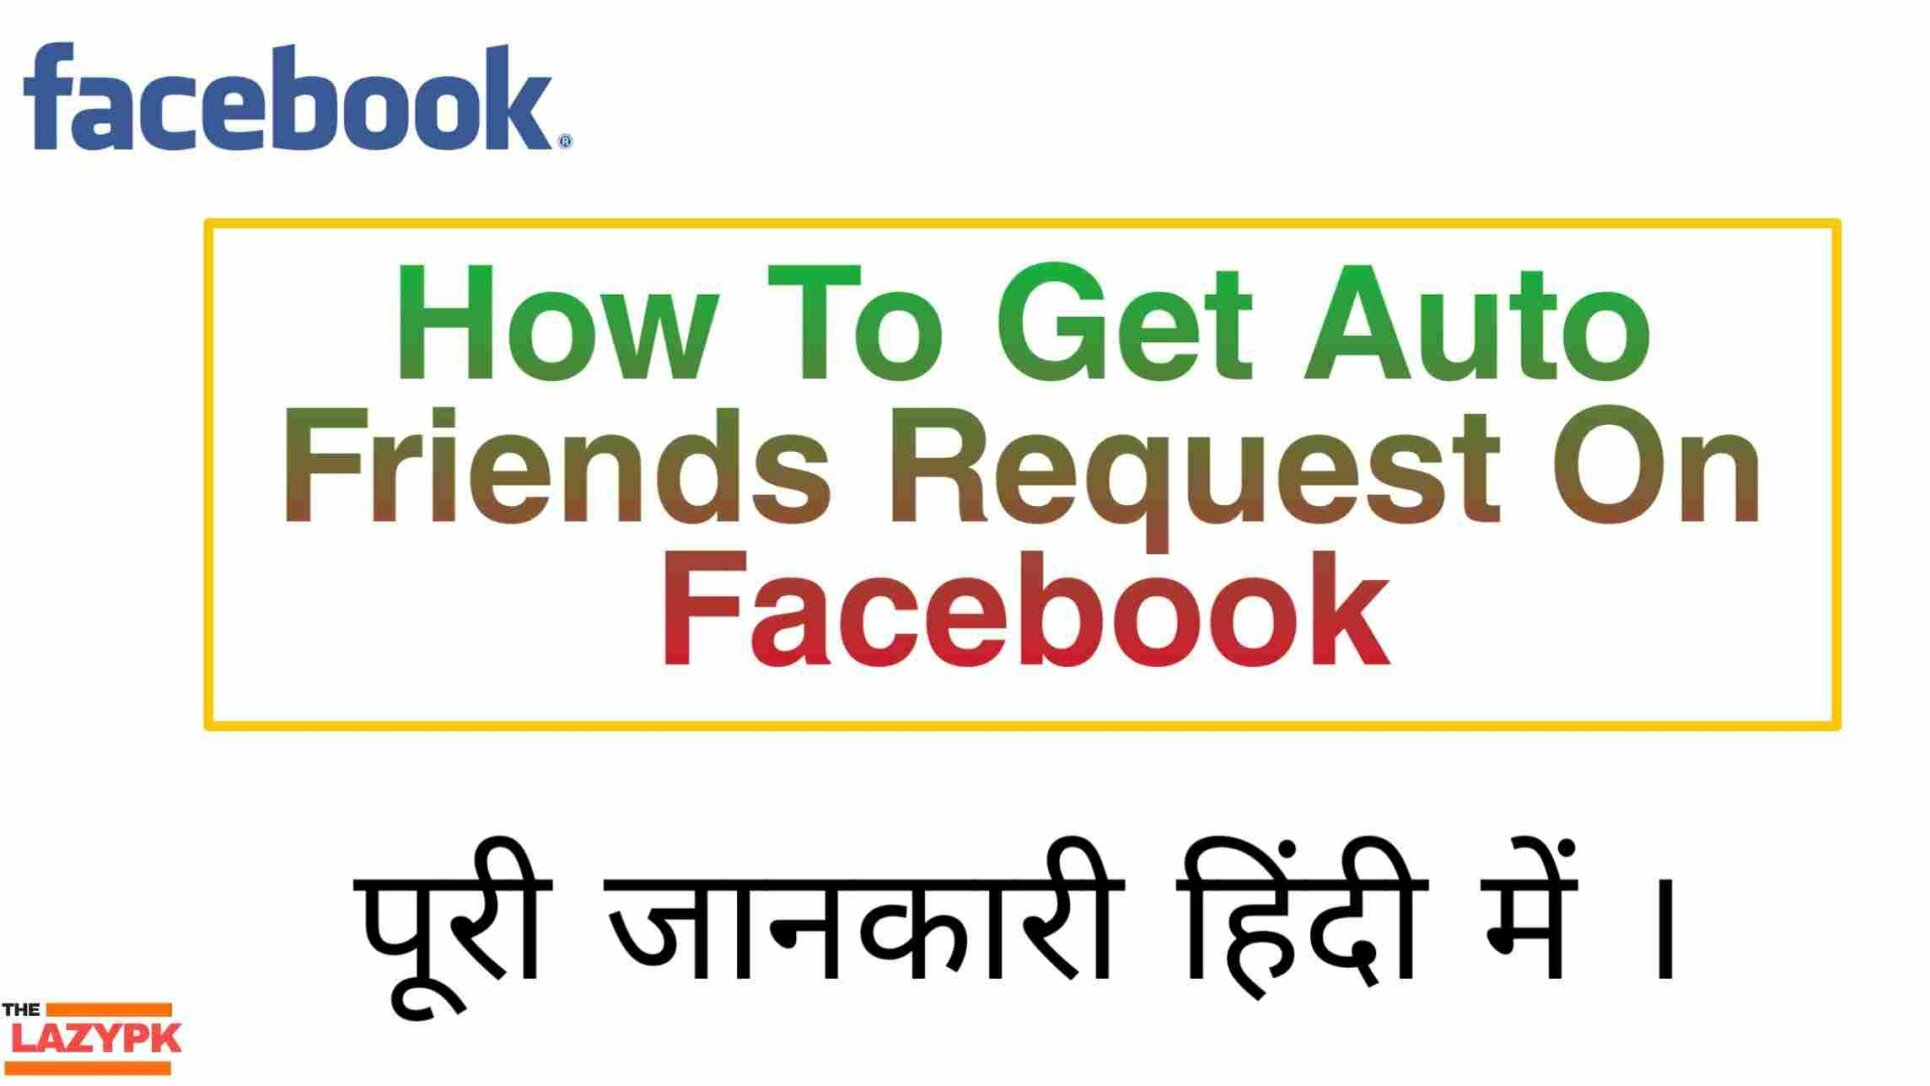 How To Get Auto Friends Request on Facebook in Hindi